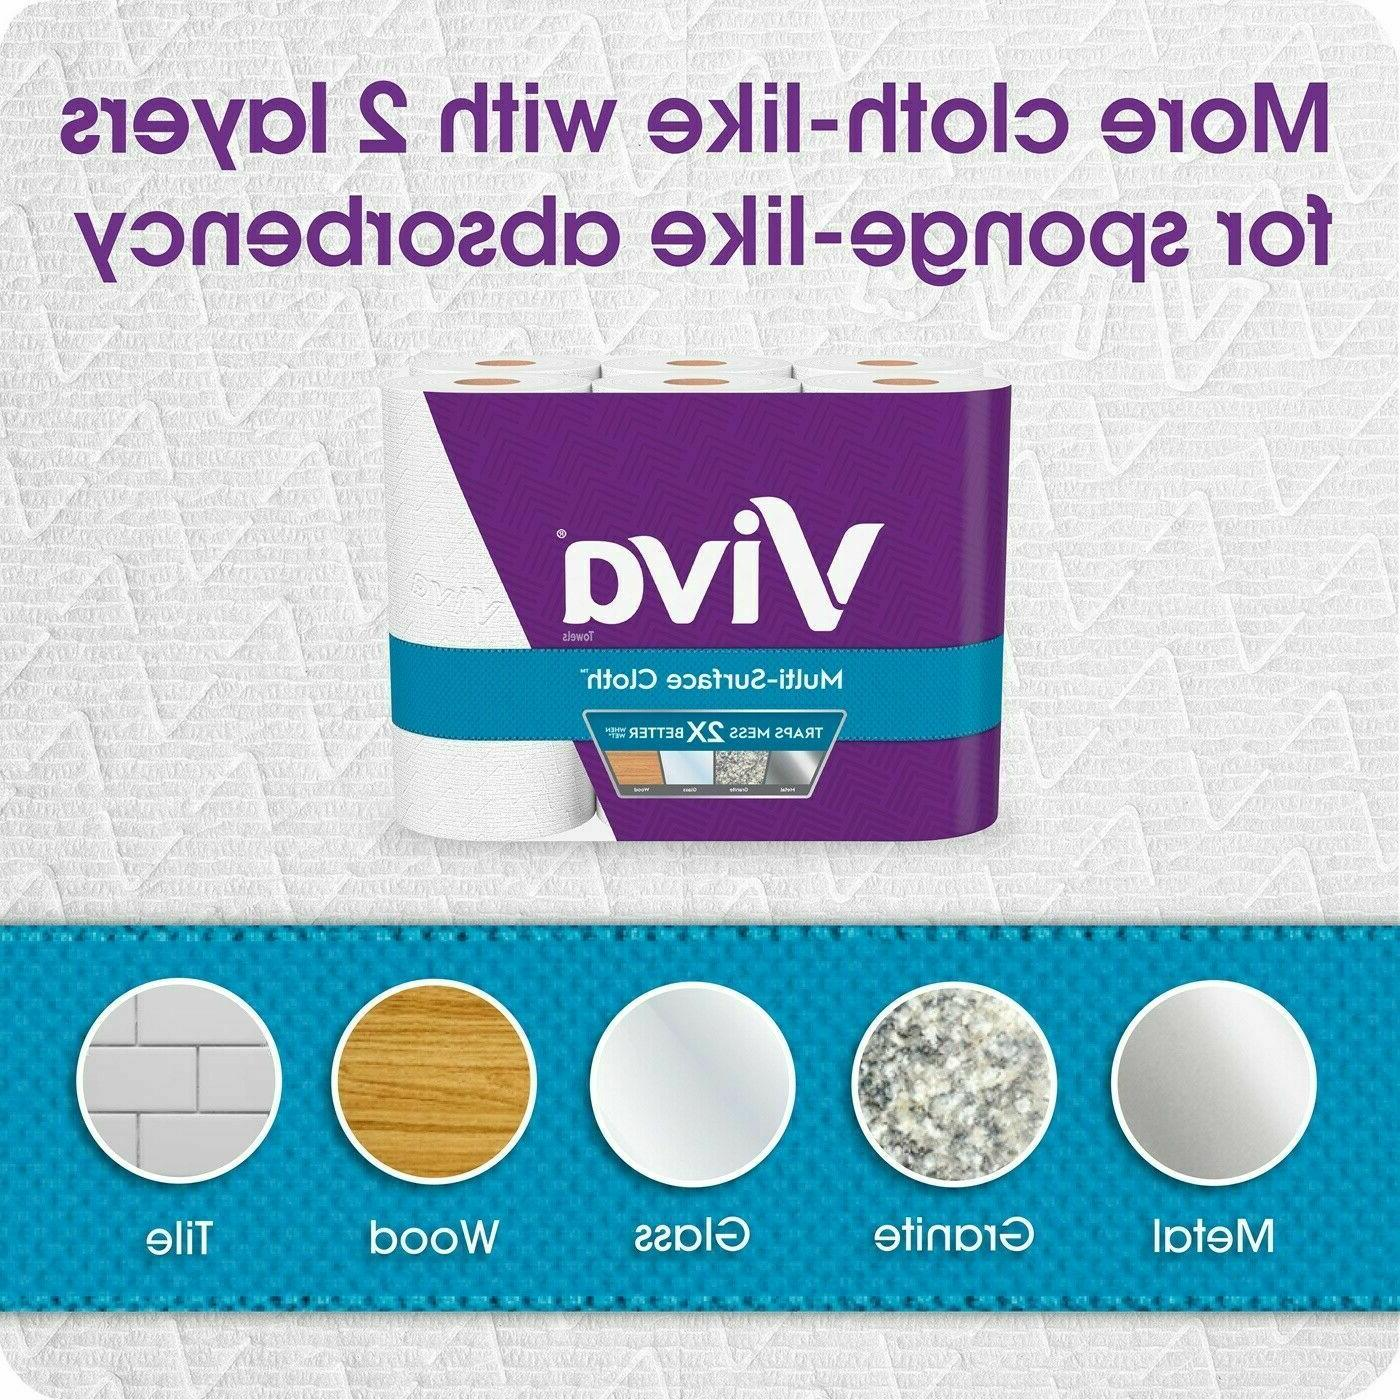 VIVA ROLL PAPER TOWELS 6 = 12 ROLLS - SHIPS PRIORITY